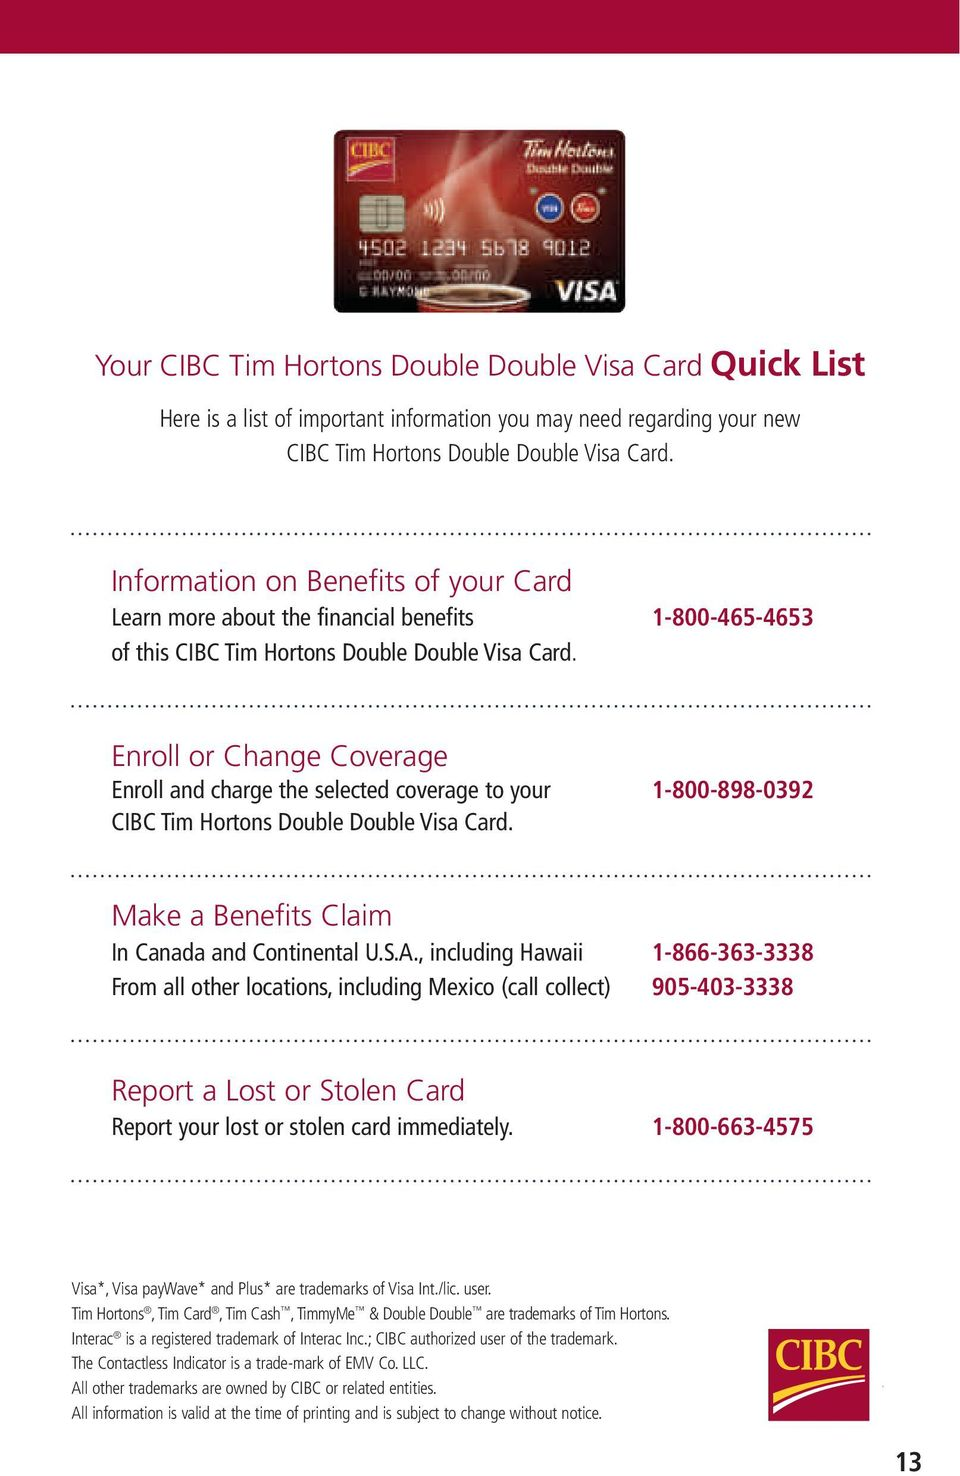 Enroll or Change Coverage Enroll and charge the selected coverage to your 1-800-898-0392 CIBC Tim Hortons Double Double Visa Card. Make a Benefits Claim In Canada and Continental U.S.A.